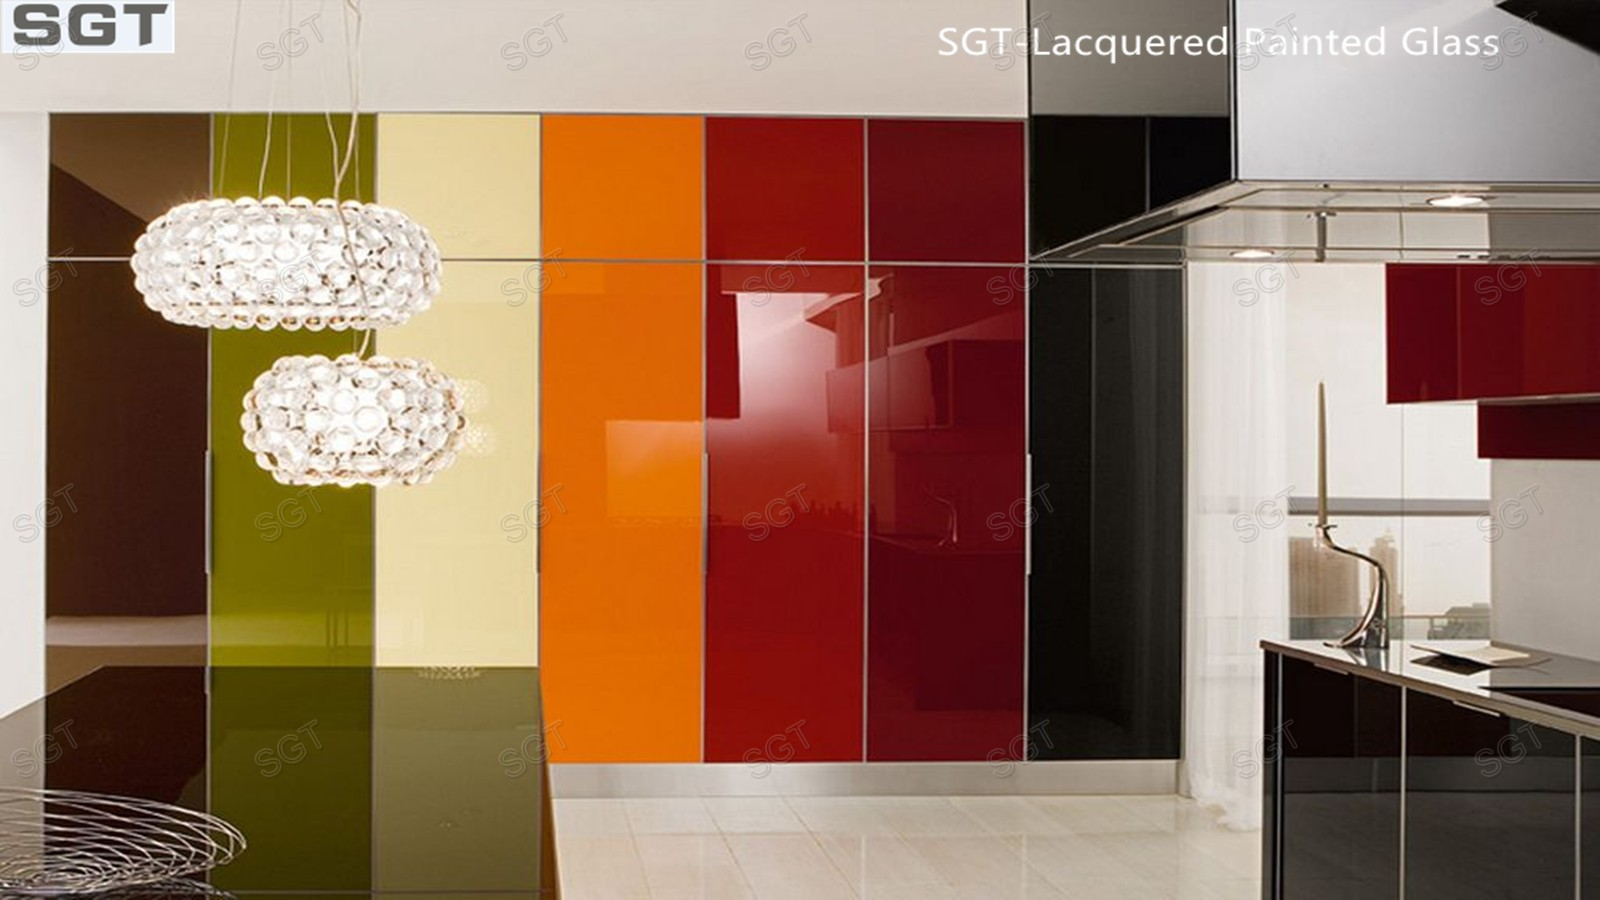 Lacquered Glass &Painted Glass